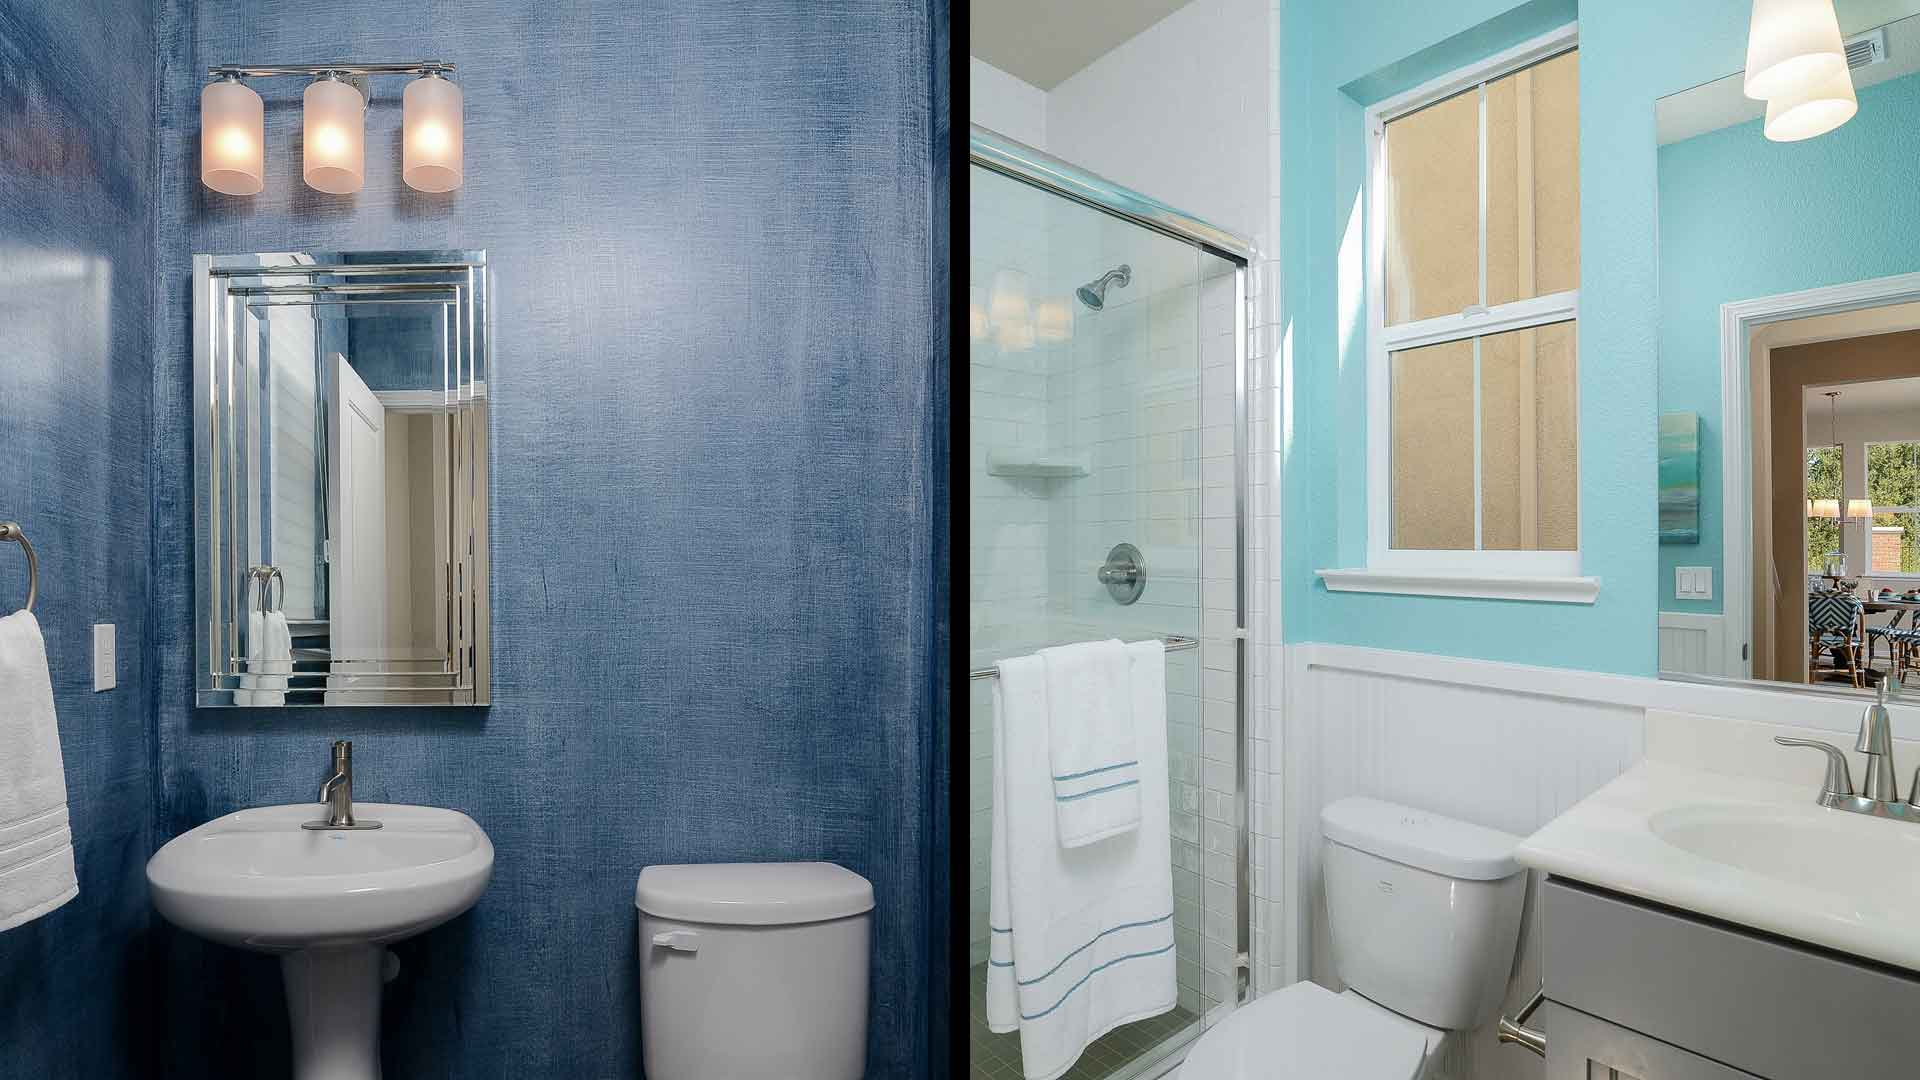 Caregiving 101 bathroom remodel and mirror safety for Bathroom remodel 101